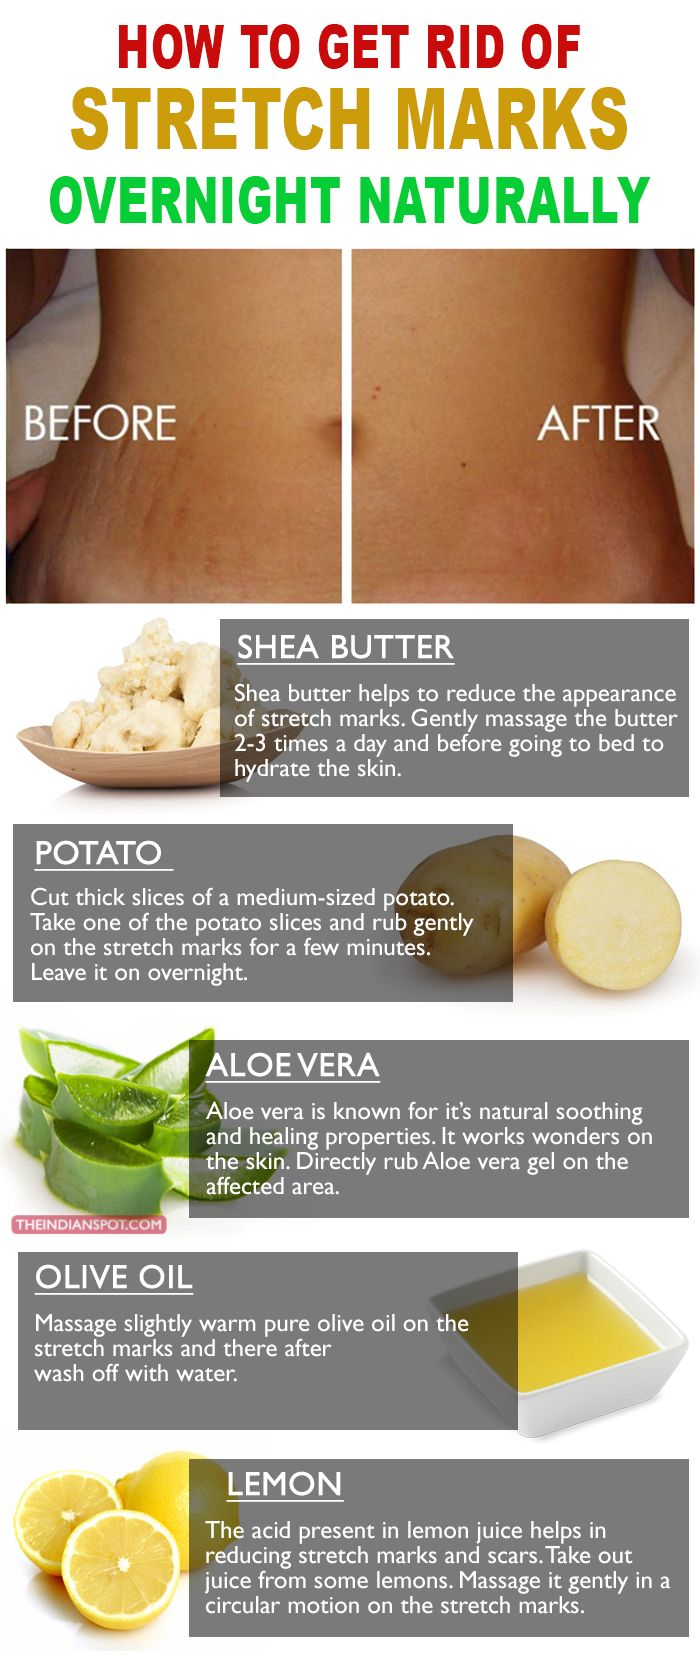 The best way to remove and get rid of stretch marks